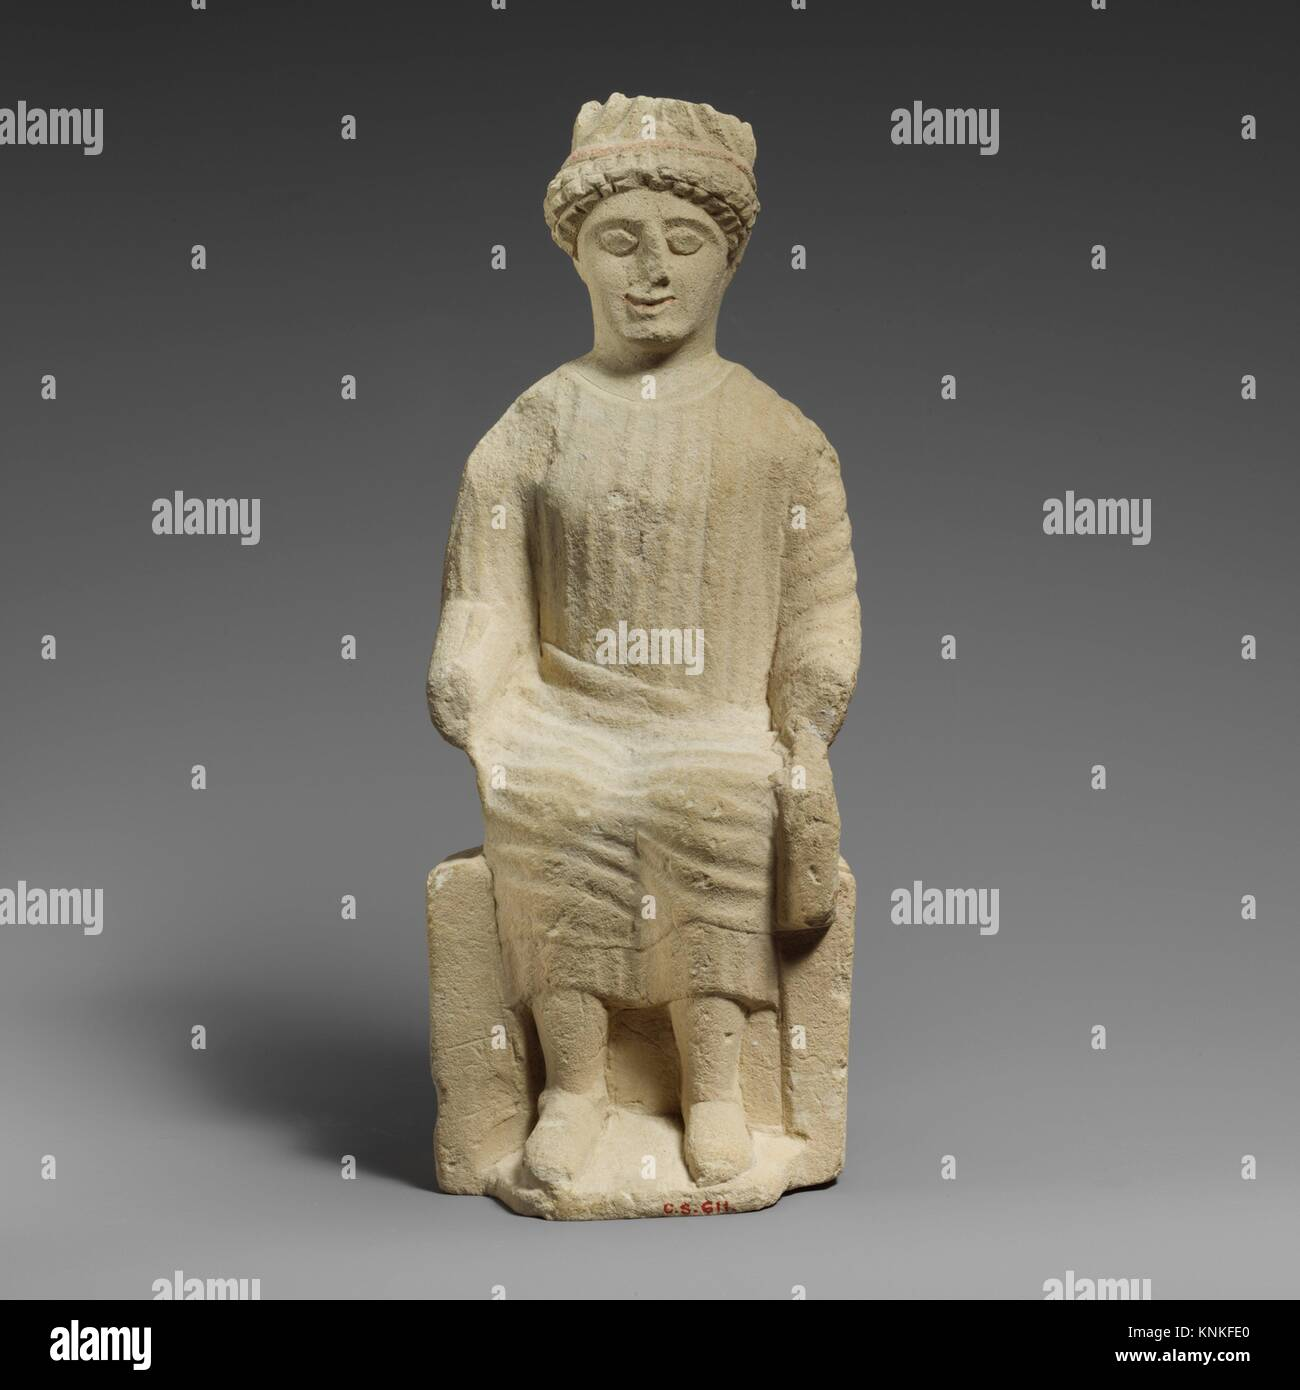 Limestone statuette of a seated beardless male votary. Period: Classical; Date: 2nd half of the 5th century B.C; Culture: Cypriot; Medium: Limestone; Stock Photo